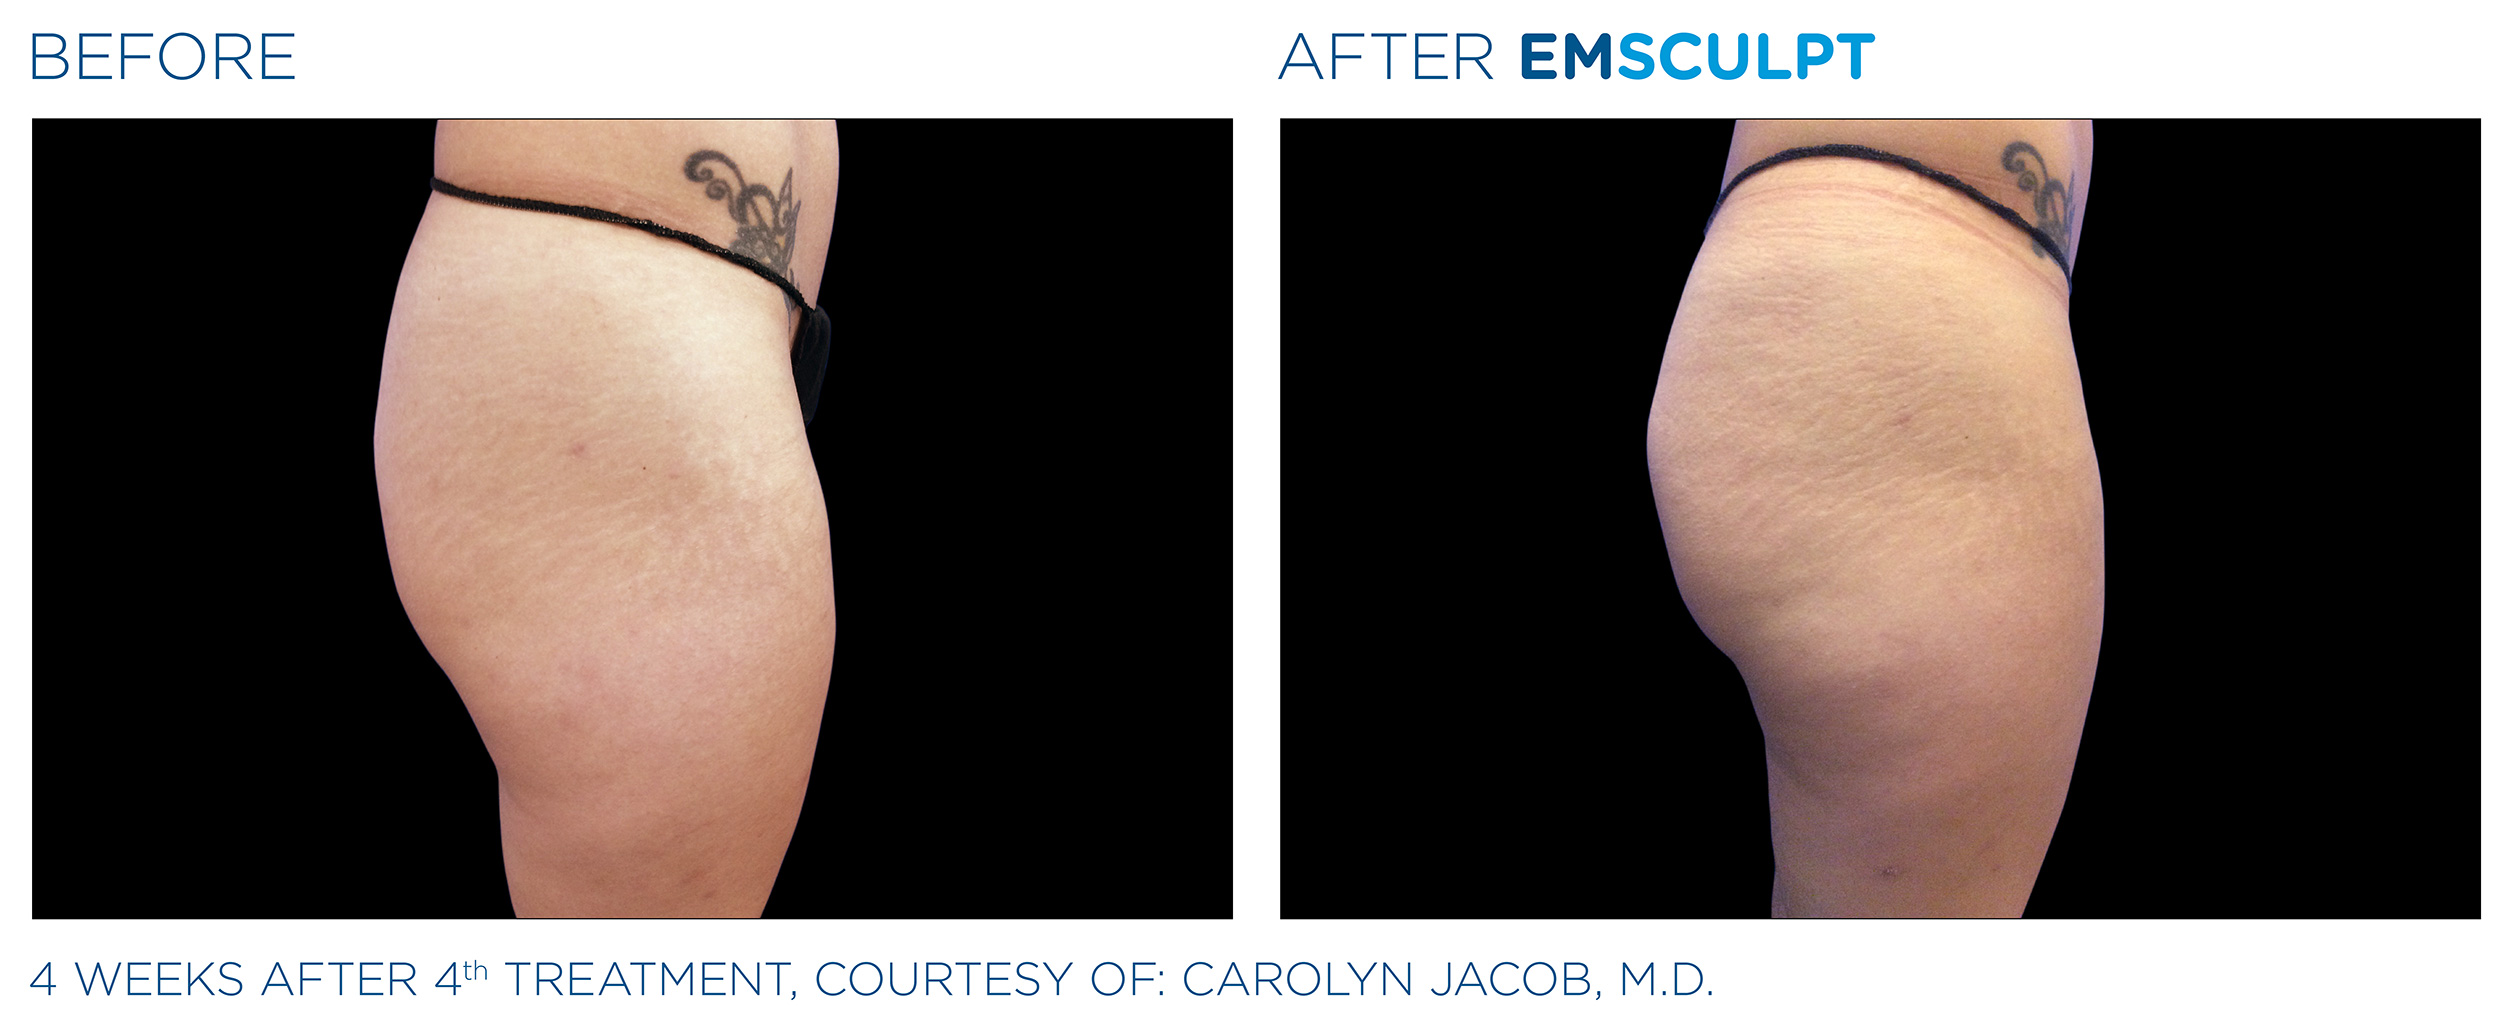 EMSCULPT Before & After Photos | Female Buttocks 7